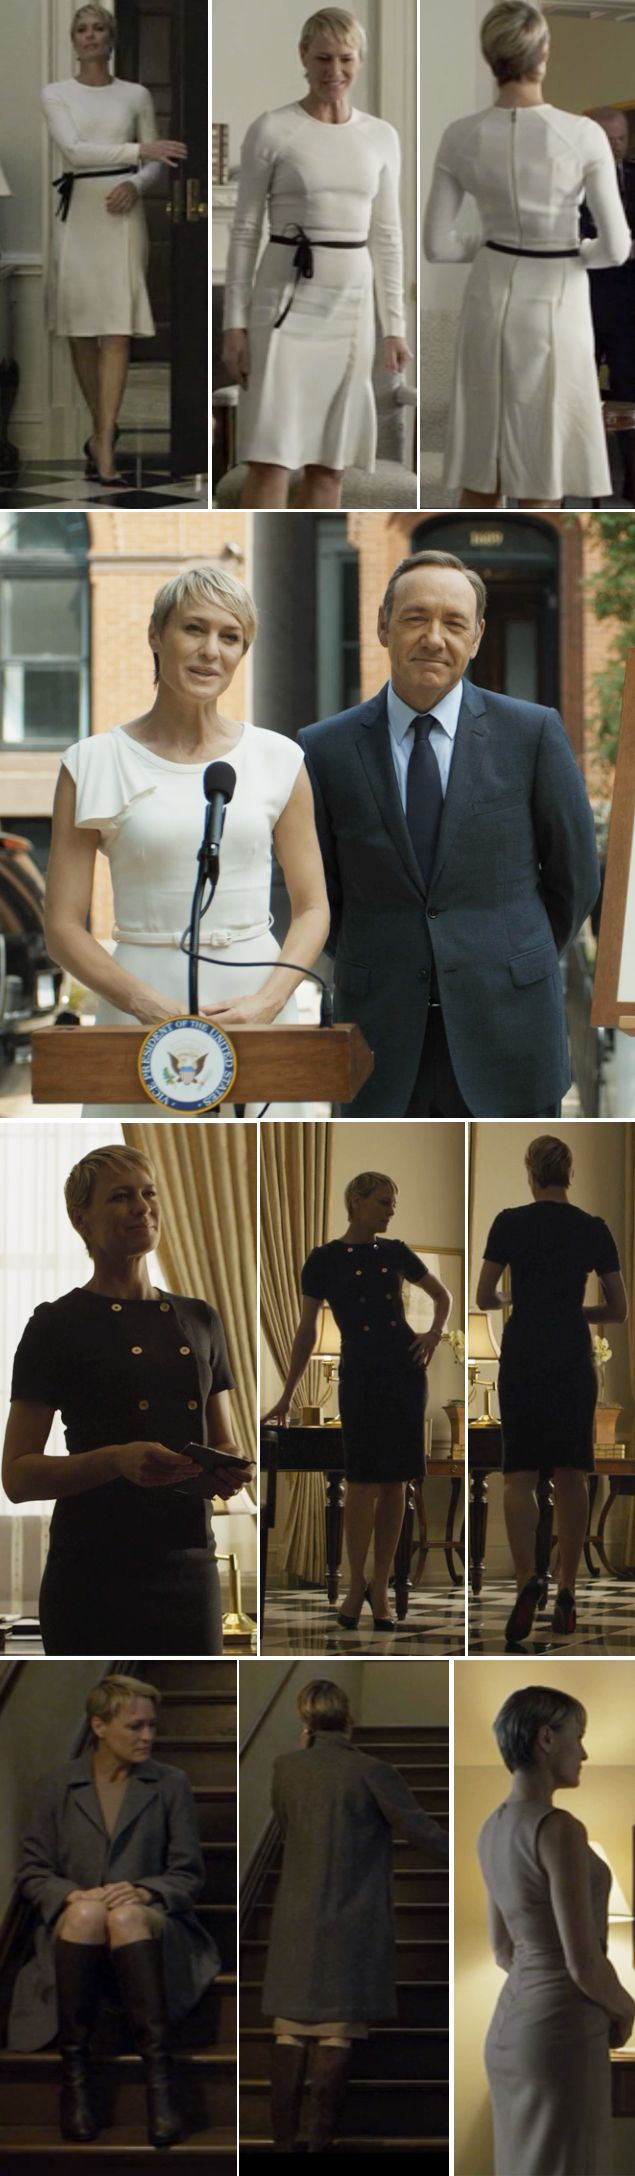 robin-wright-claire-underwood-house-of-cards-kevin-spacey-president-netflix-serie-tv-fashion-moda-7